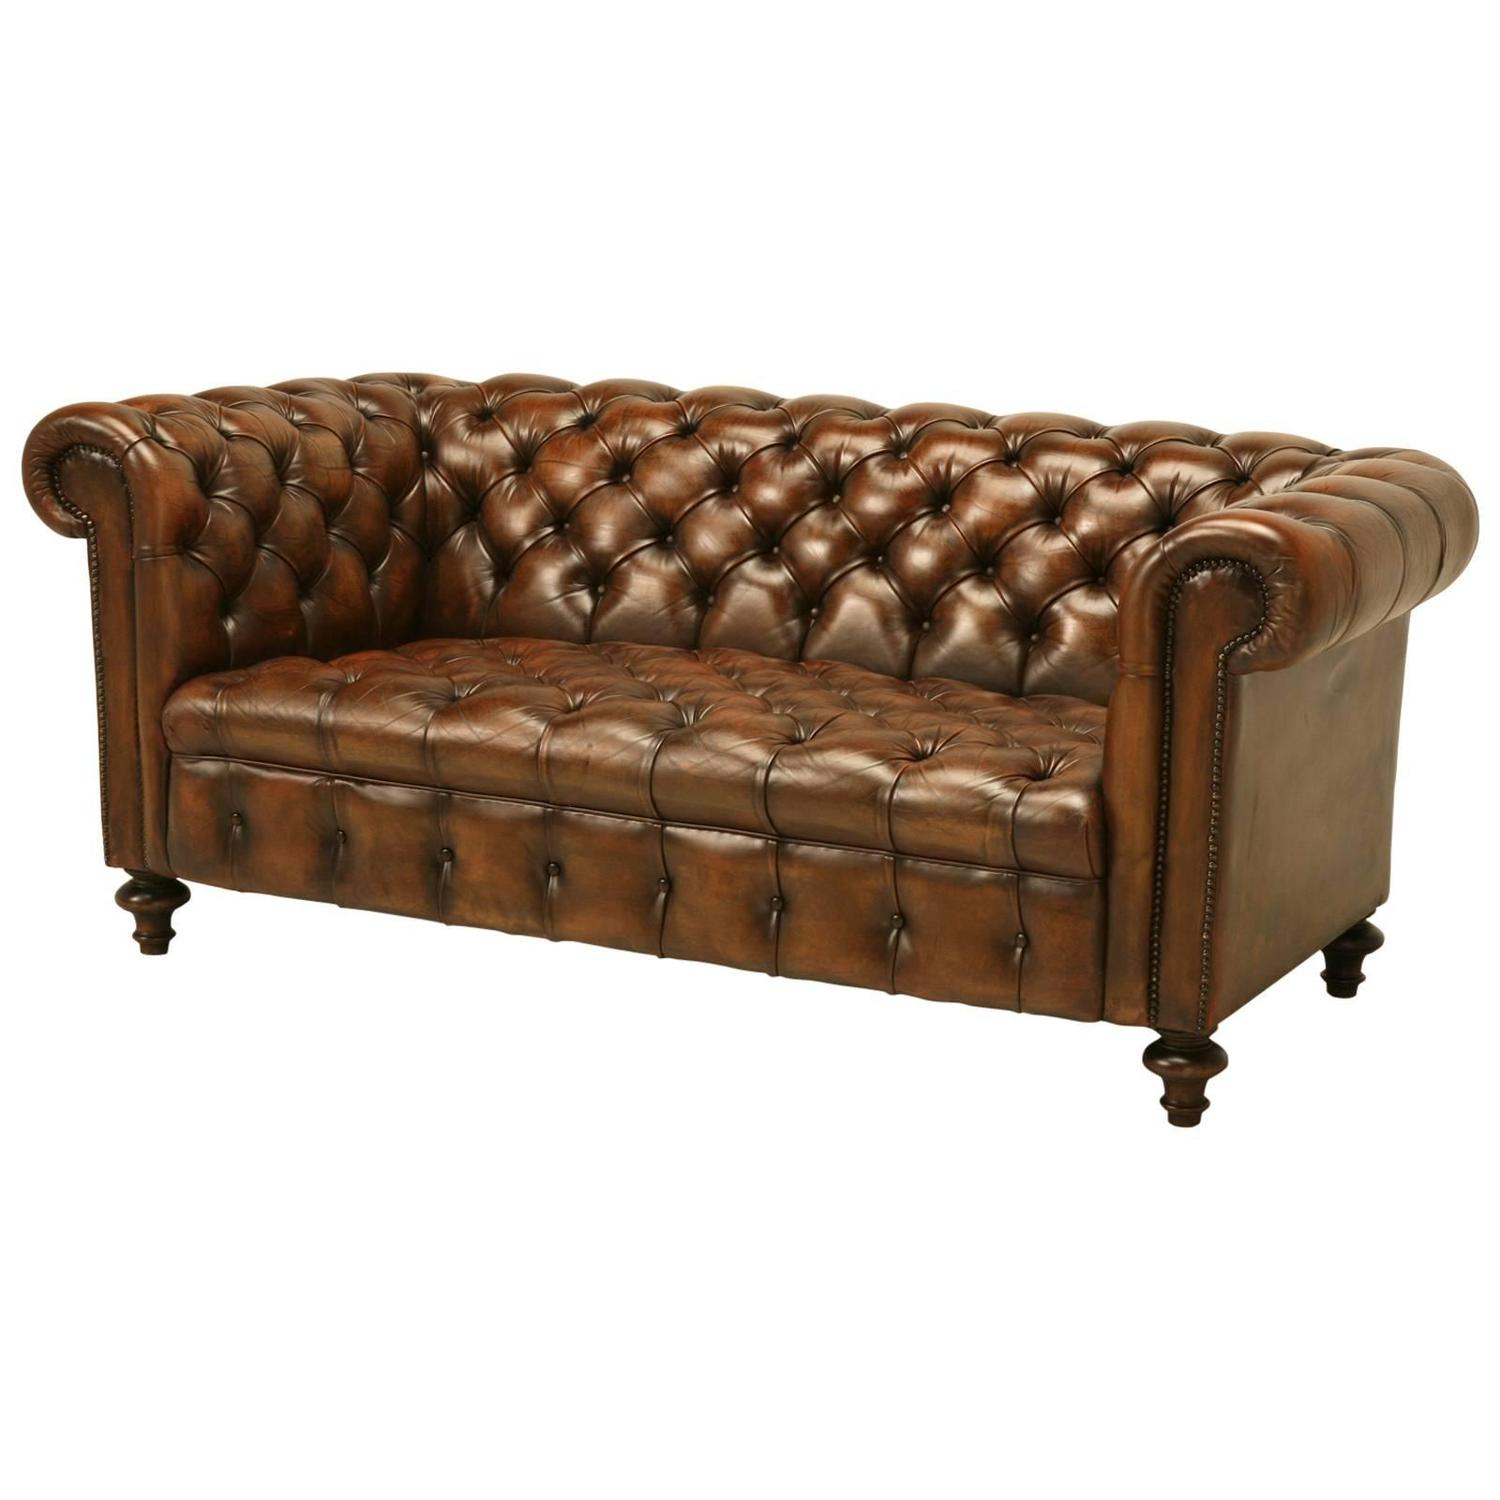 English leather chesterfield sofa at 1stdibs Leather chesterfield loveseat